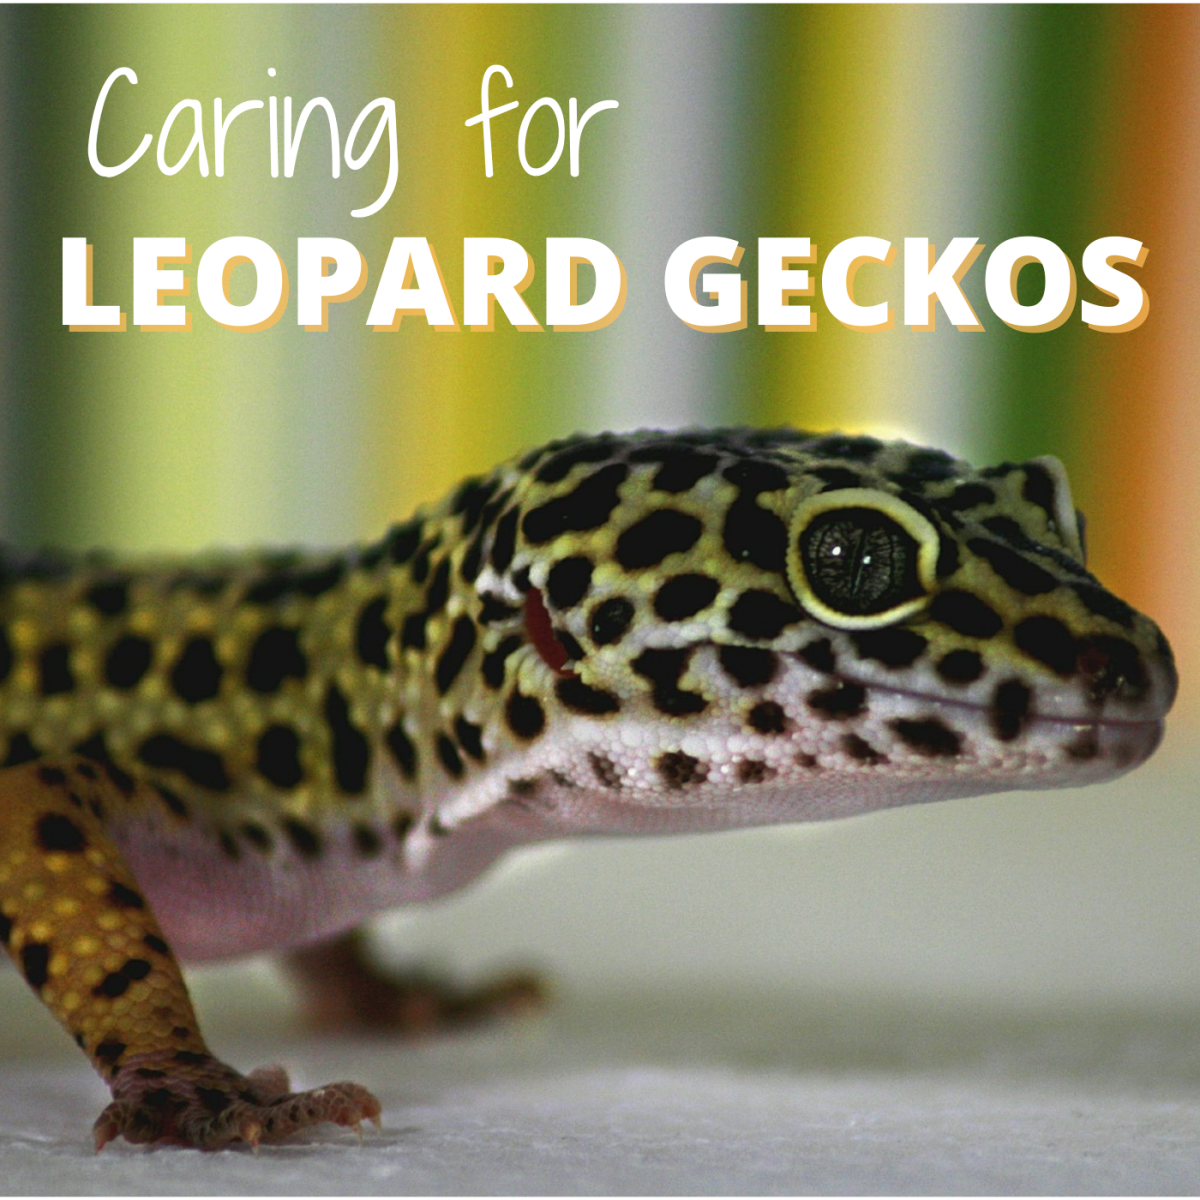 Learn how to house, feed, and handle a pet leopard gecko.